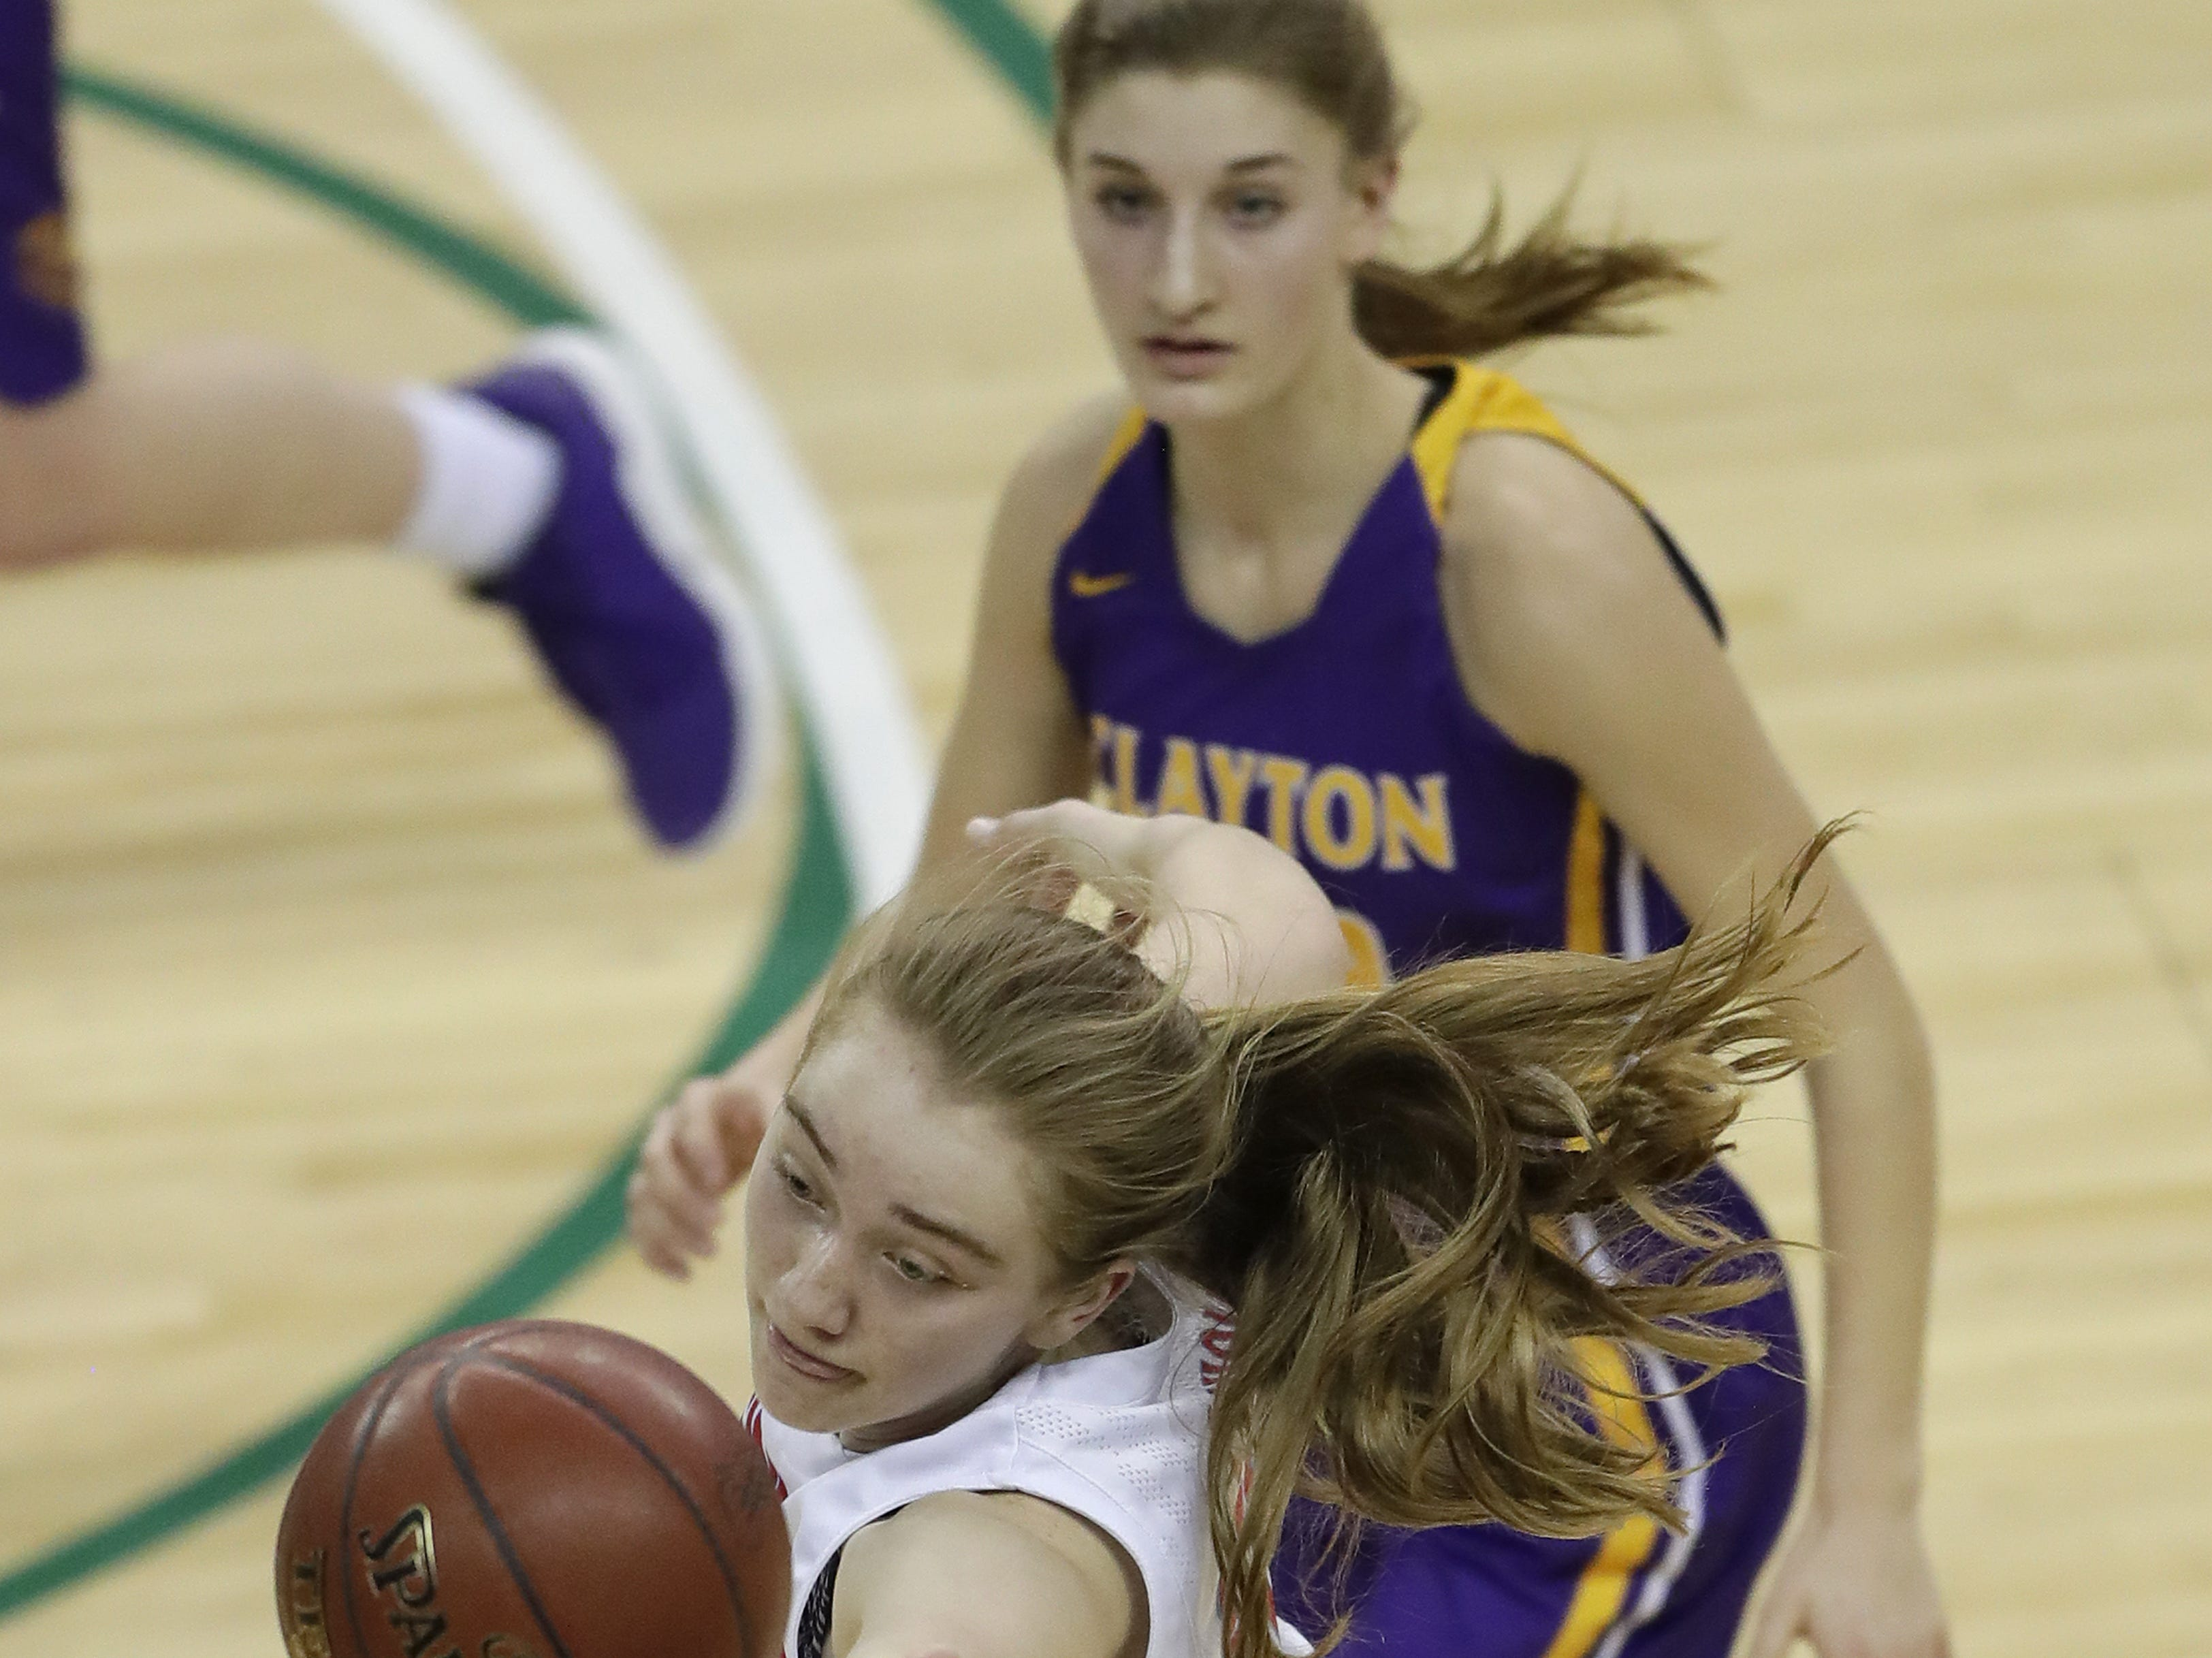 Wausau Newman Catholic's Jadelyn Ganski (33) gains control of the ball against Clayton's Jaedyn Bussewitz (22) during their Division 5 semifinal game at the WIAA girls state basketball tournament Friday, March 8, 2019, at the Resch Center in Ashwaubenon, Wis.  Dan Powers/USA TODAY NETWORK-Wisconsin